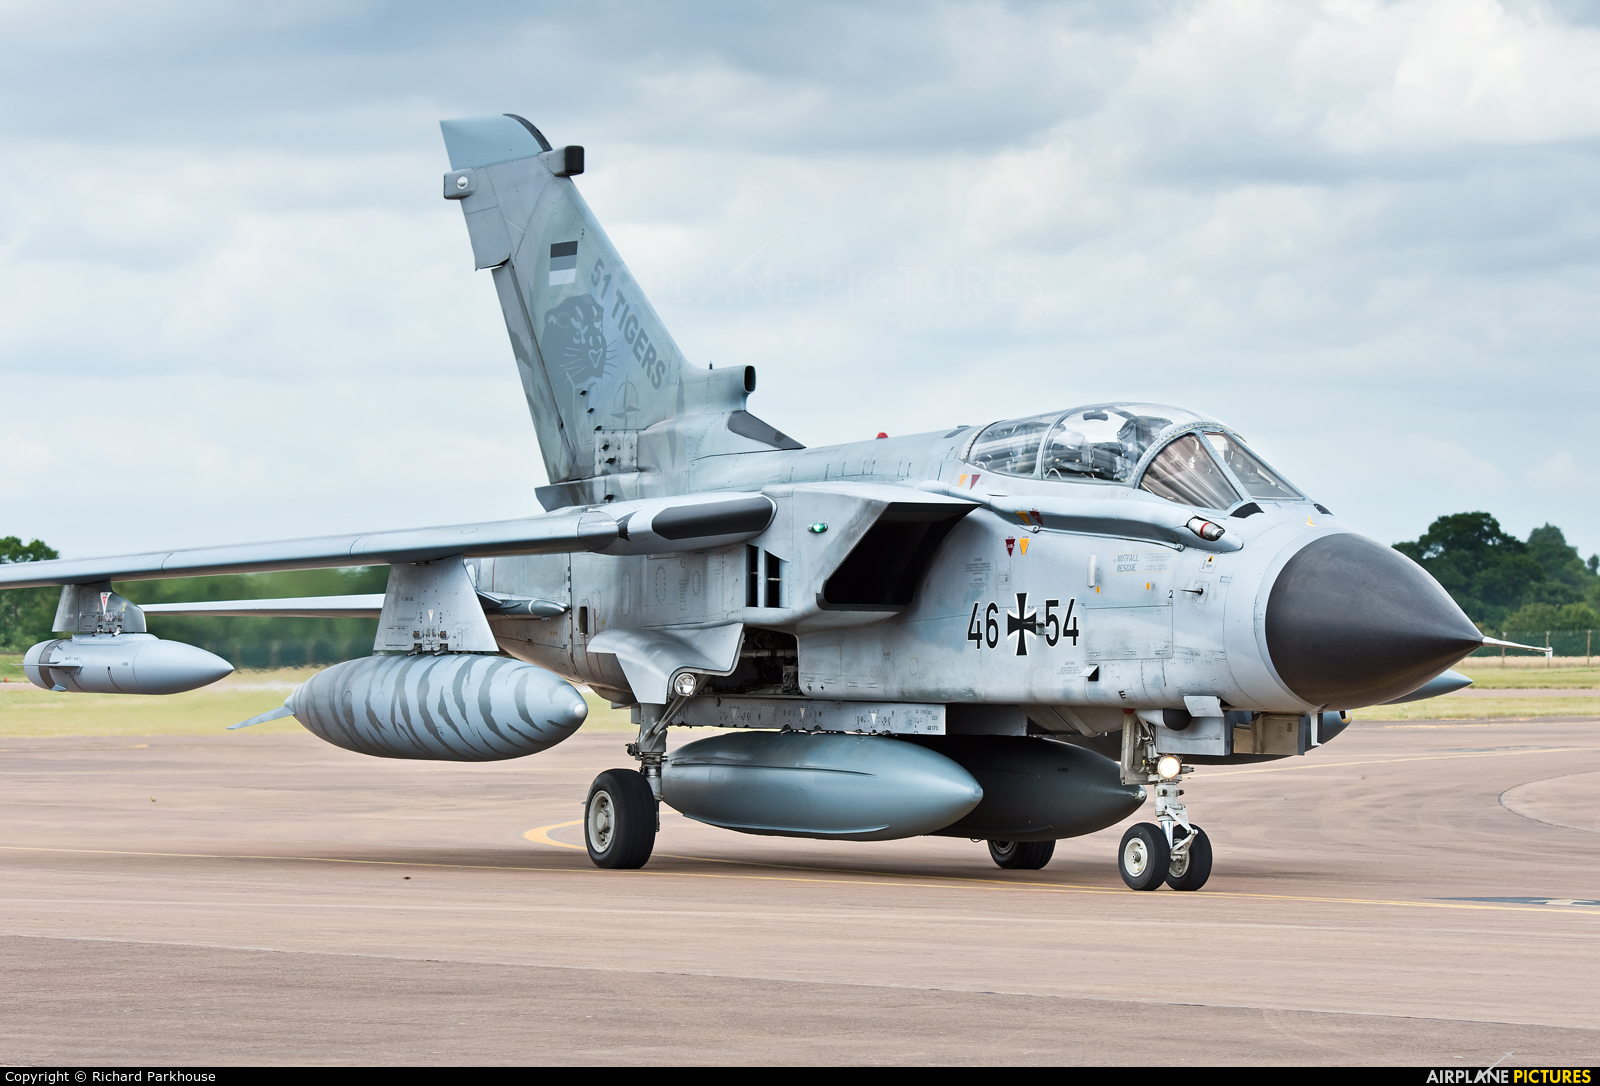 Germany - Air Force 46+54 aircraft at Fairford